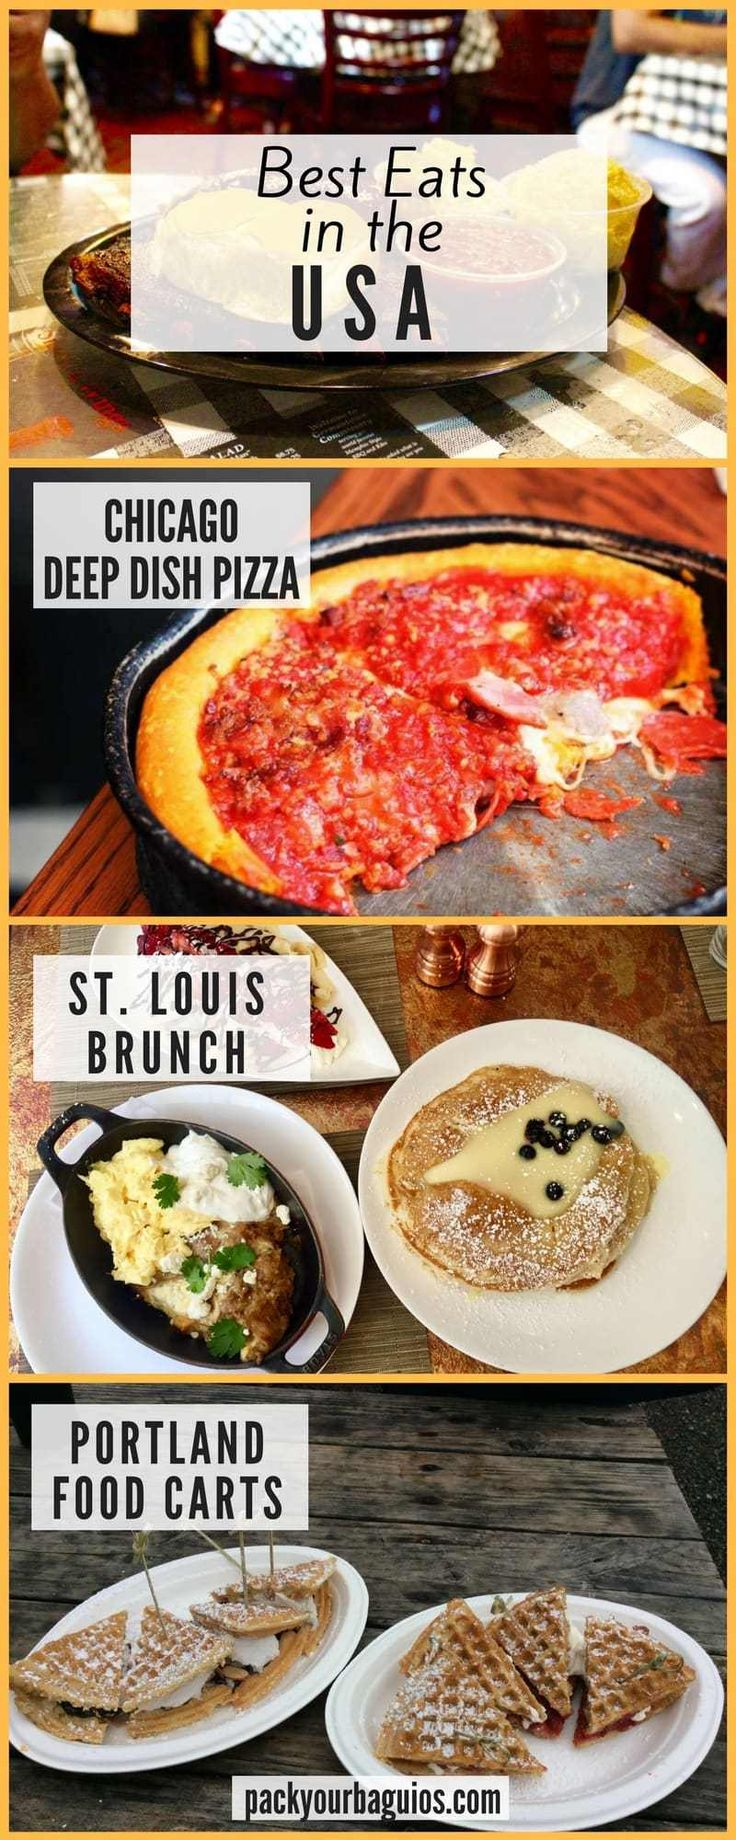 Best Eats in the USA   United States travel   United States food   Chicago Deep Dish Pizza  Denver Farm-to-Table   Kansas City Barbecue   Memphis Barbecue   Nashville Hot Chicken   Raleigh Shrimp and Grits   St. Louis Brunch   Portland Food Carts